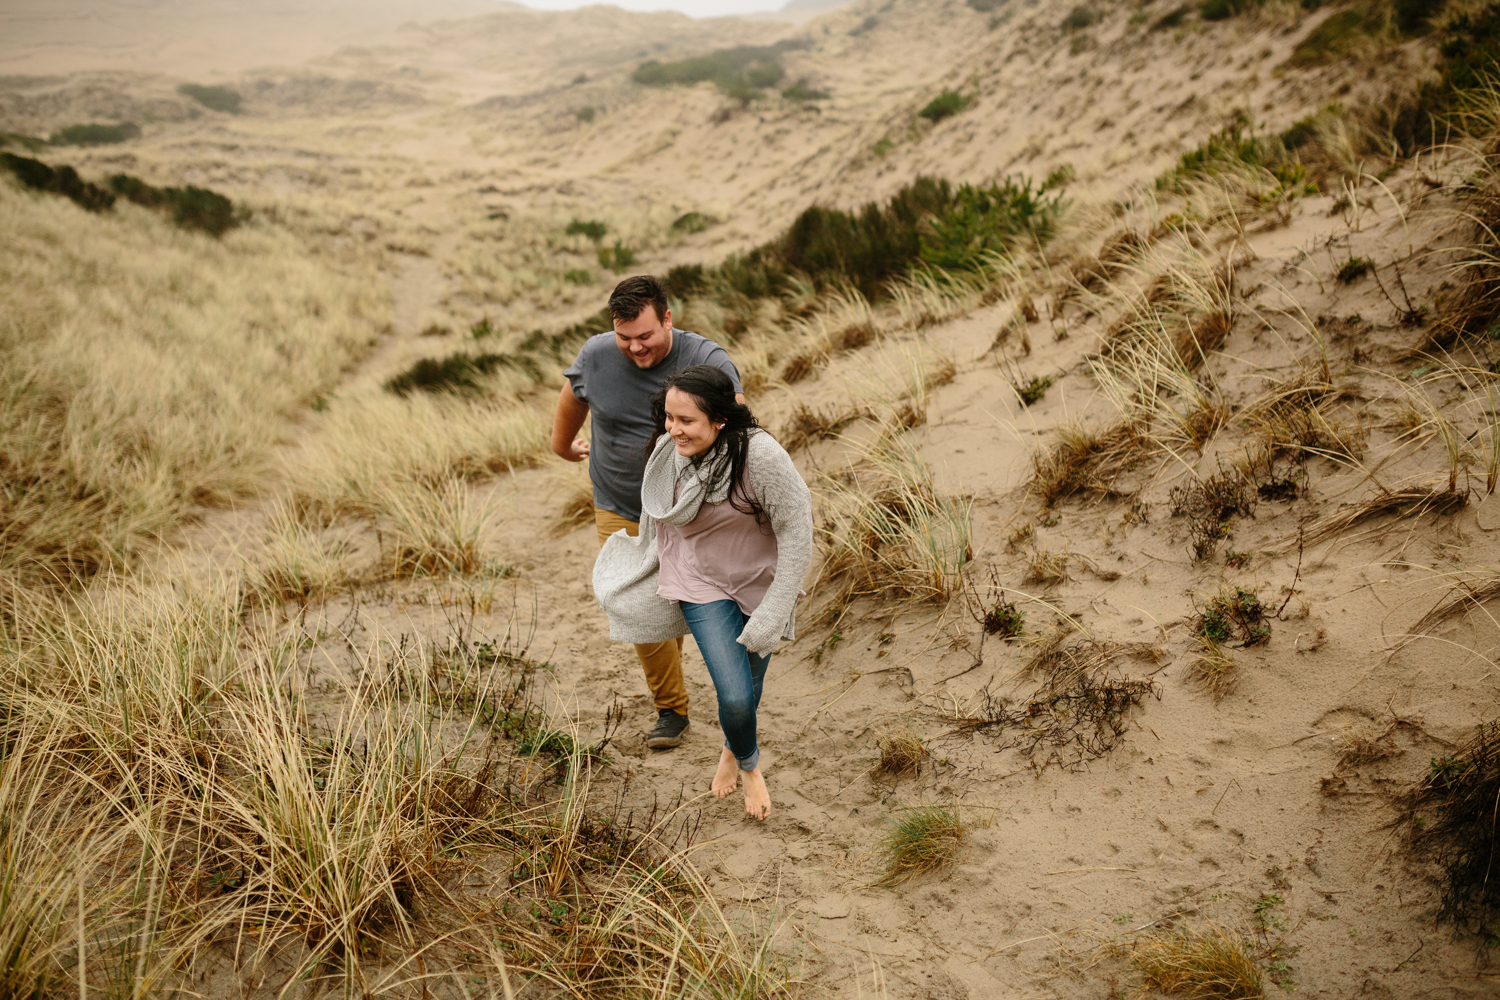 Portrait of a young couple walking through the sand and tall gra